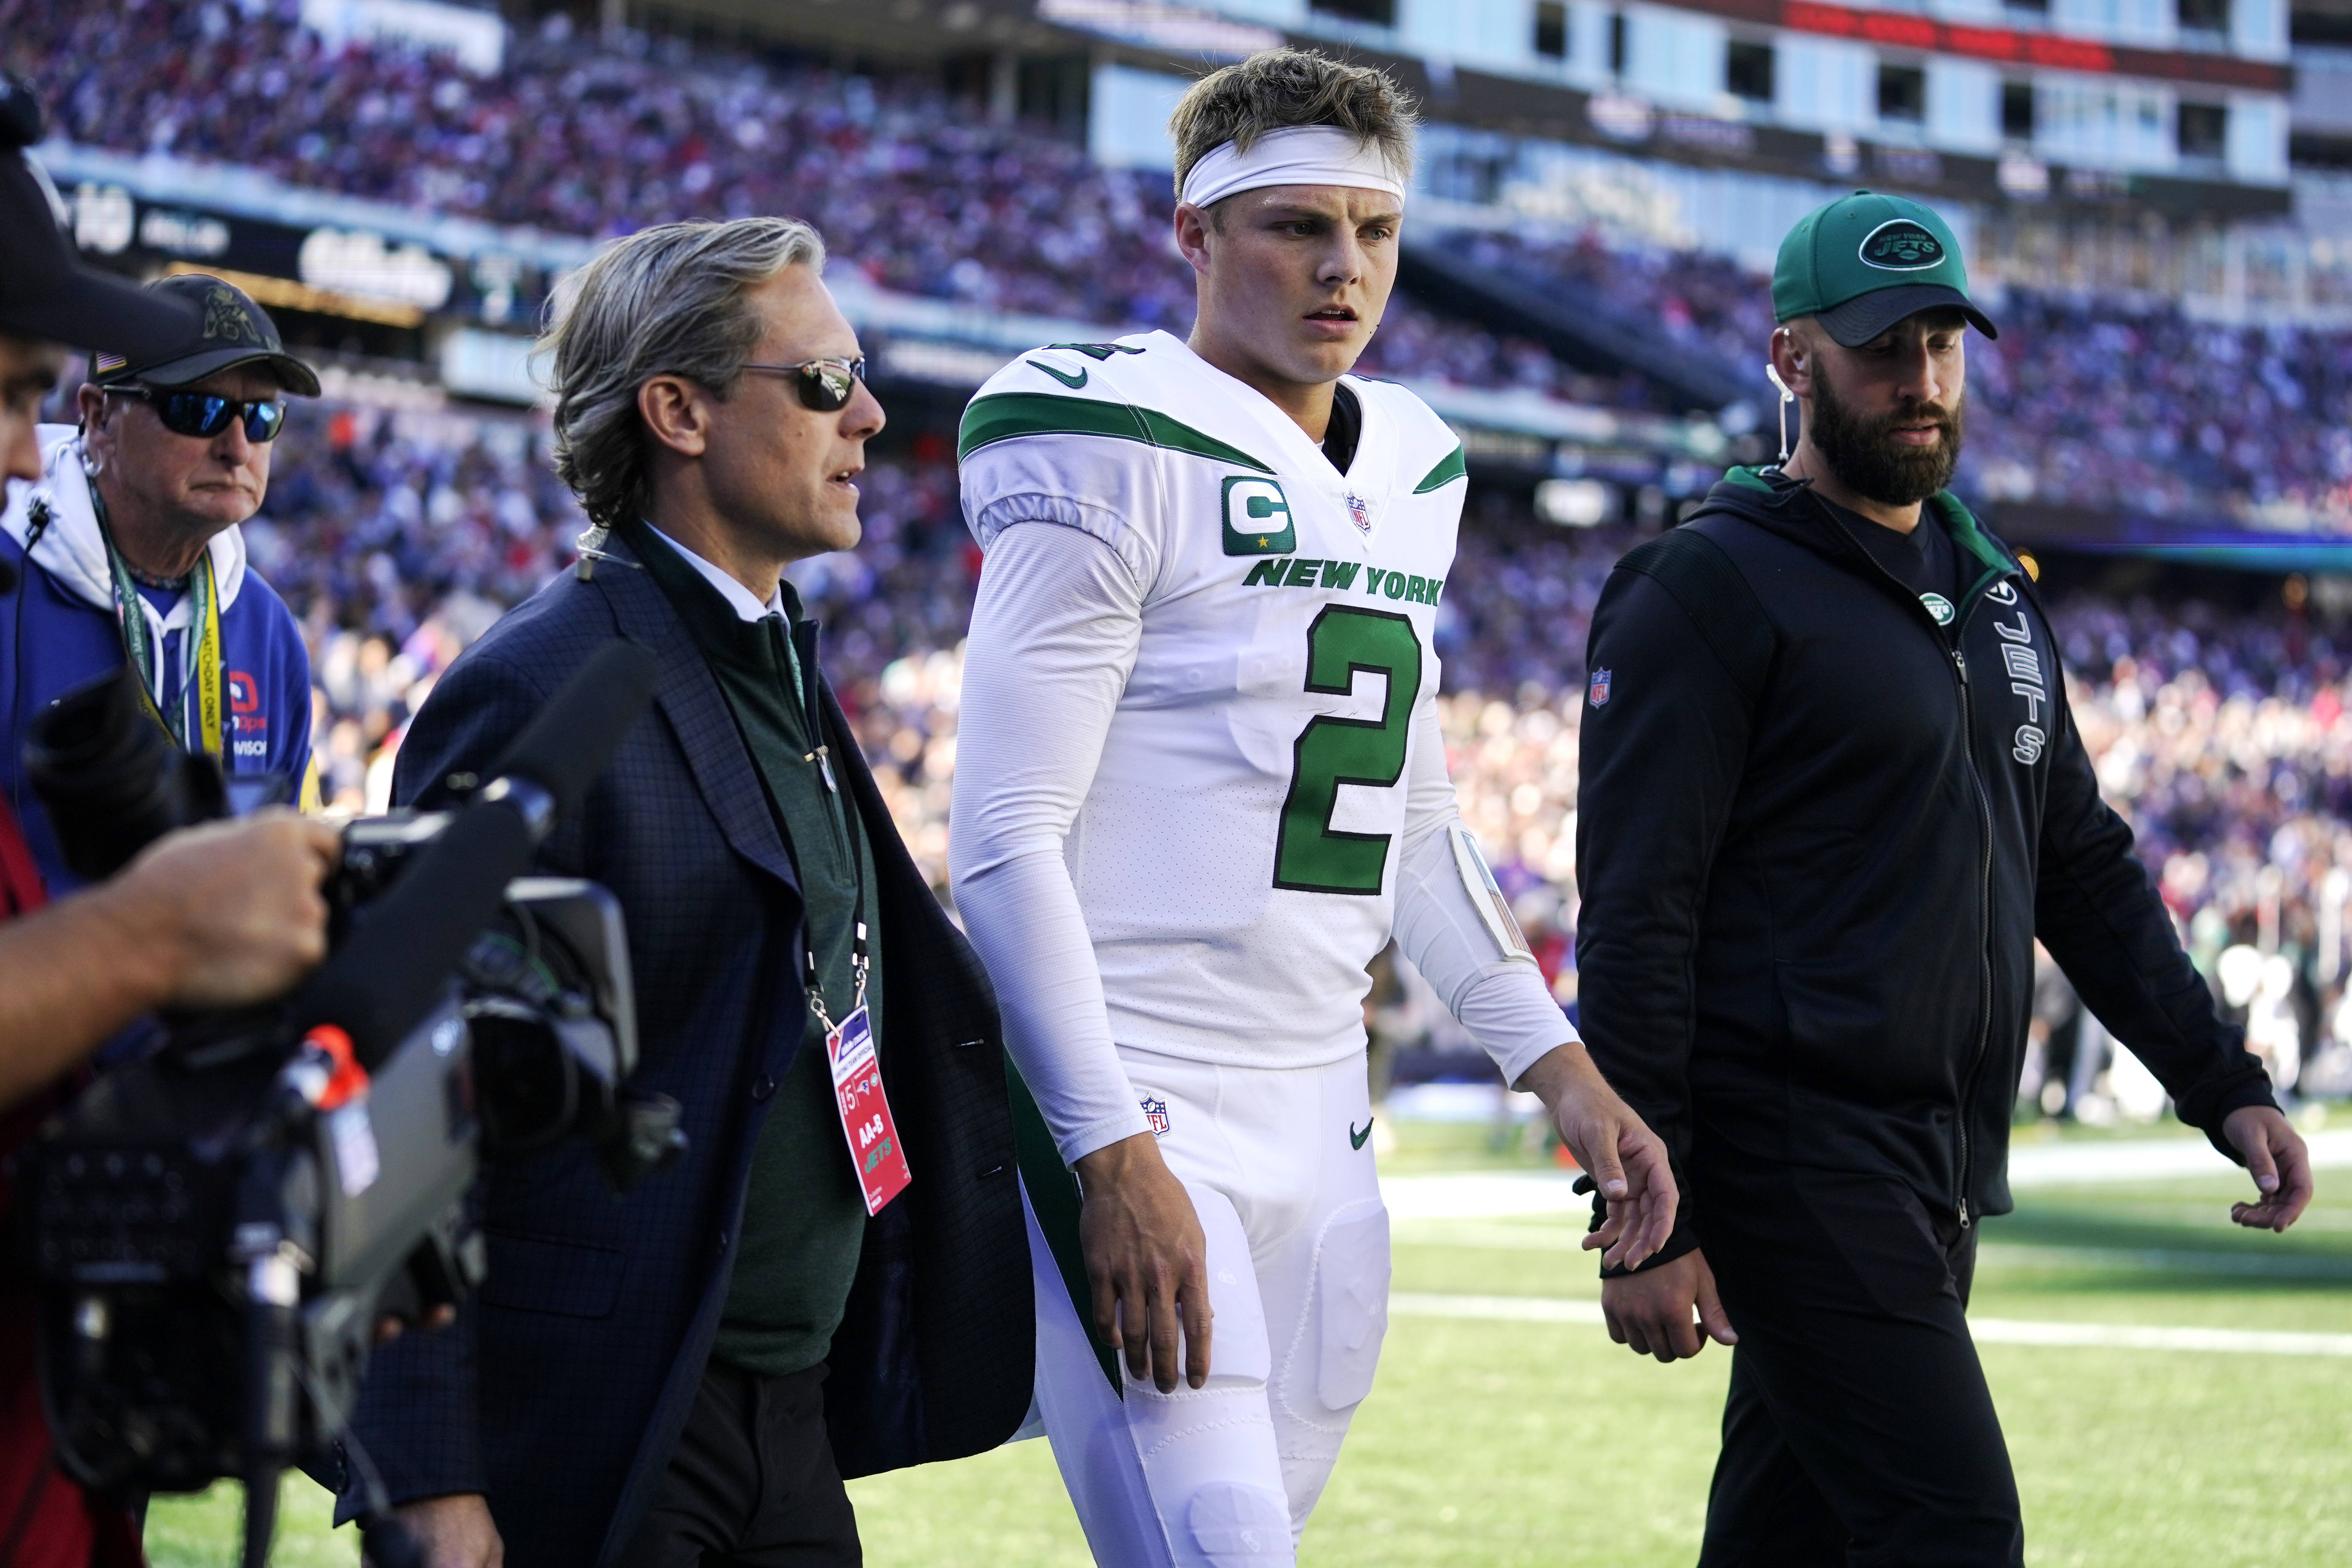 New York Jets quarterback Zach Wilson (2) is escorted to the locker room after an apparent injury.